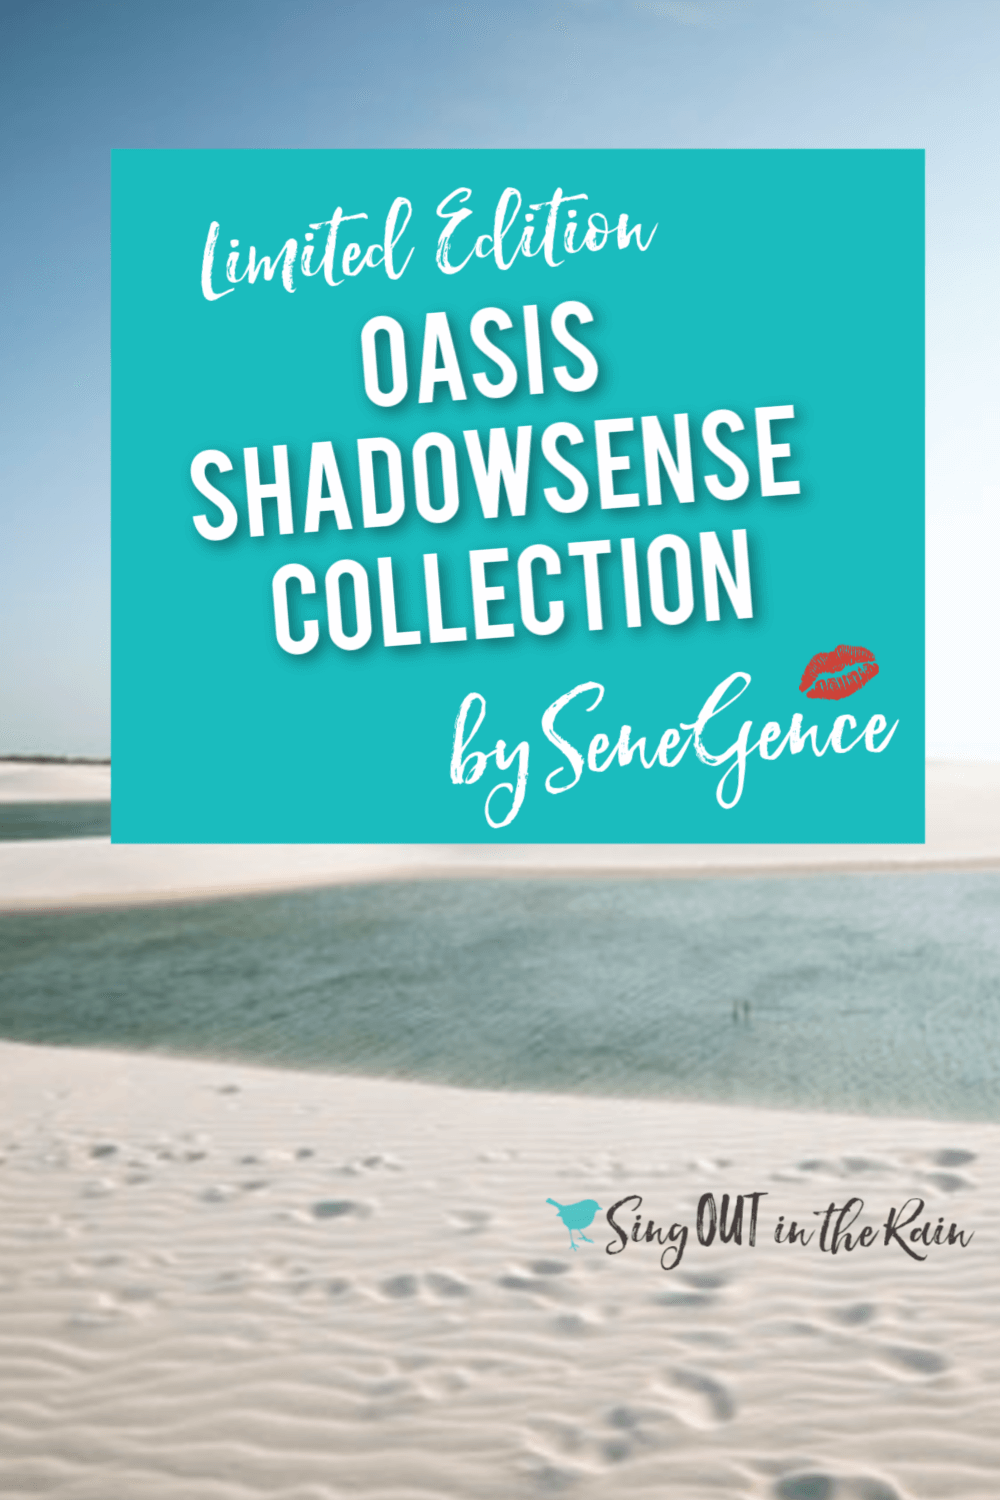 Oasis ShadowSense Collection by SeneGence (Limited Edition)